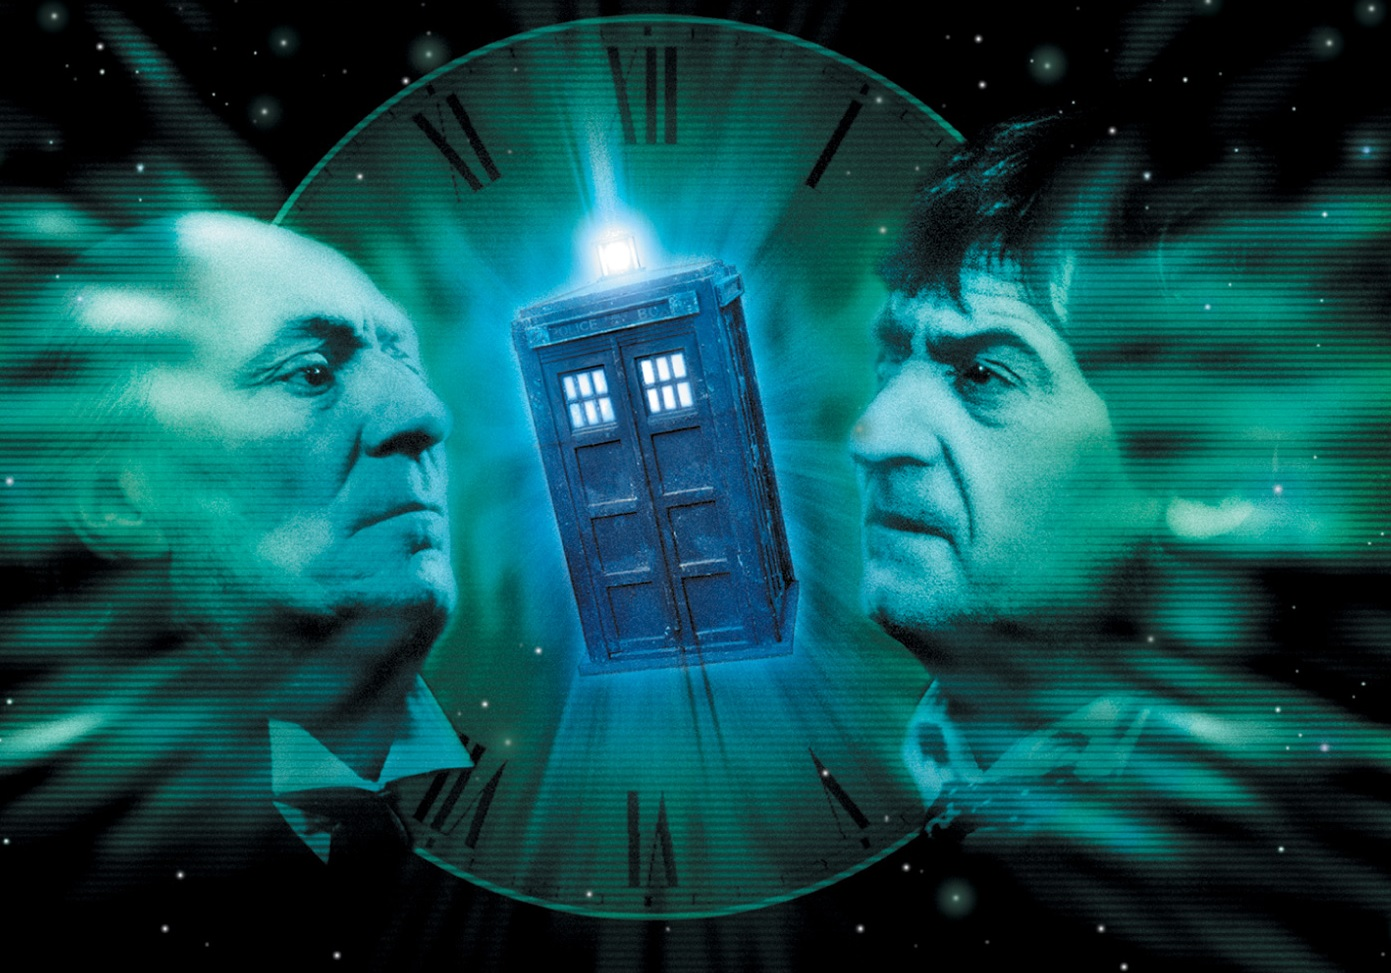 William Hartnell and Patrick Troughton looking at a Tardis against a clock face - all sort of blue and green